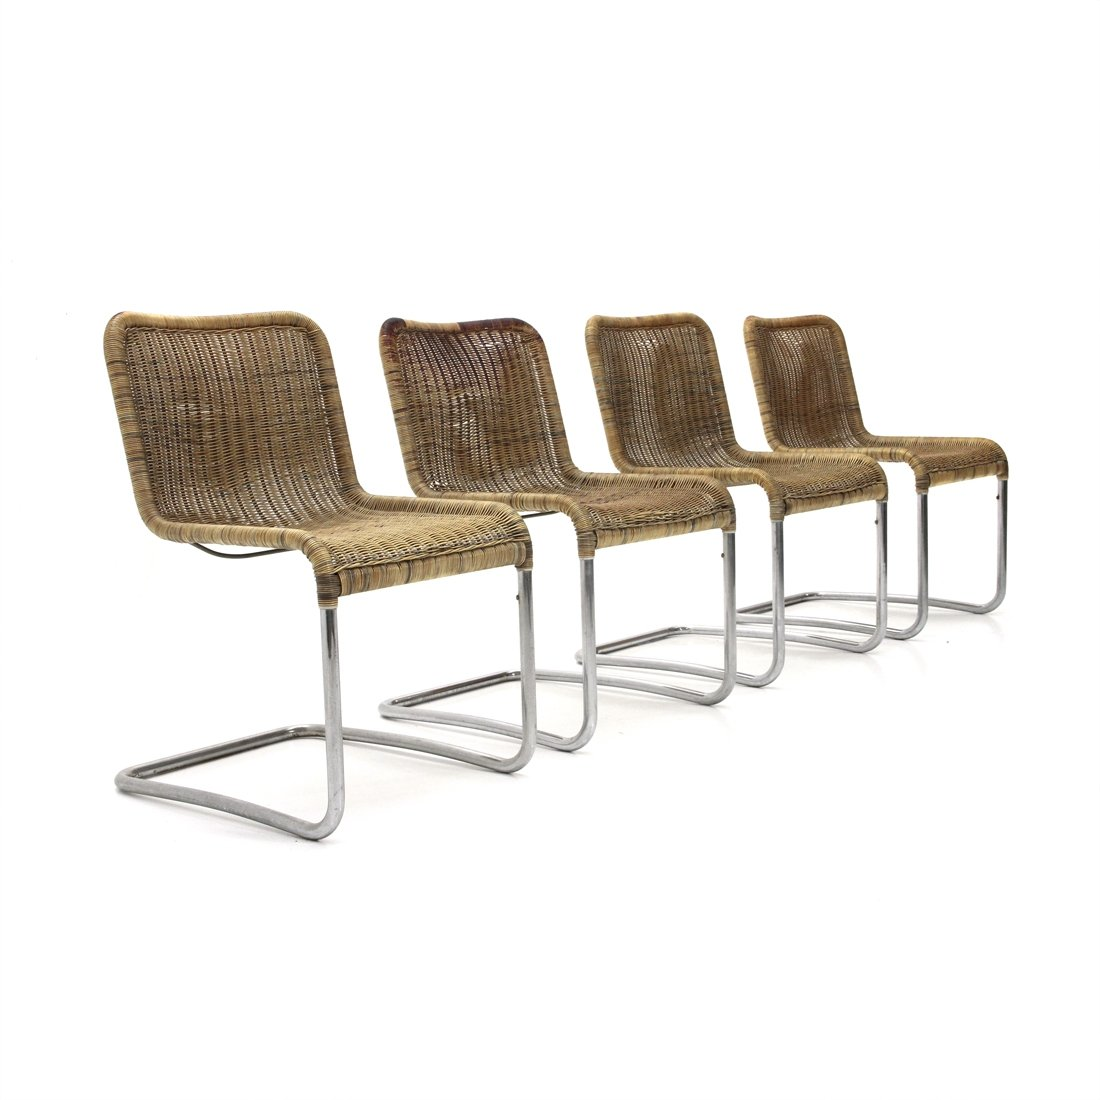 Set Of 4 Italian Mid Century Dining Chairs In Chromed Metal